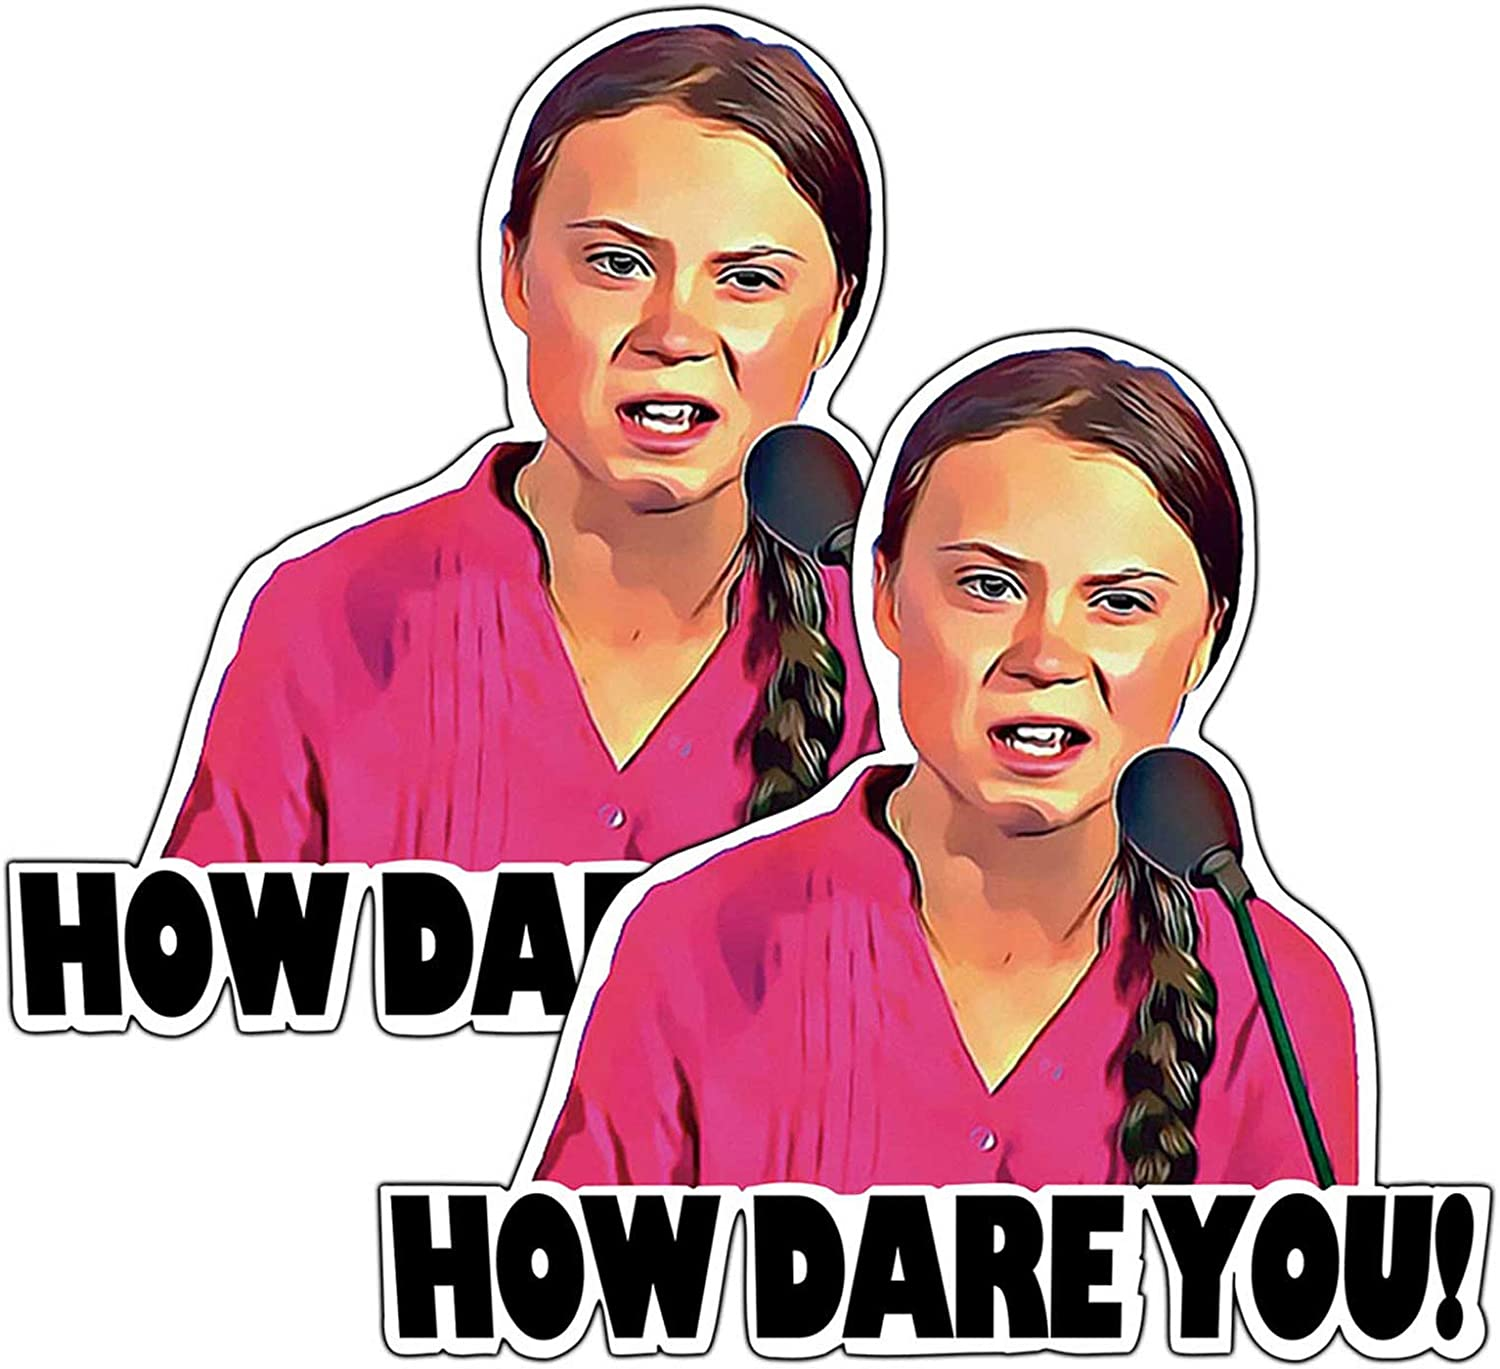 2-Pack How Dare You Laptop Stickers Decal, Greta Thunberg Decal-Funny Vinyl Decals for Laptop Car Bumper Window Decorations,Vivid Color and UV Fade Resistant 5x5